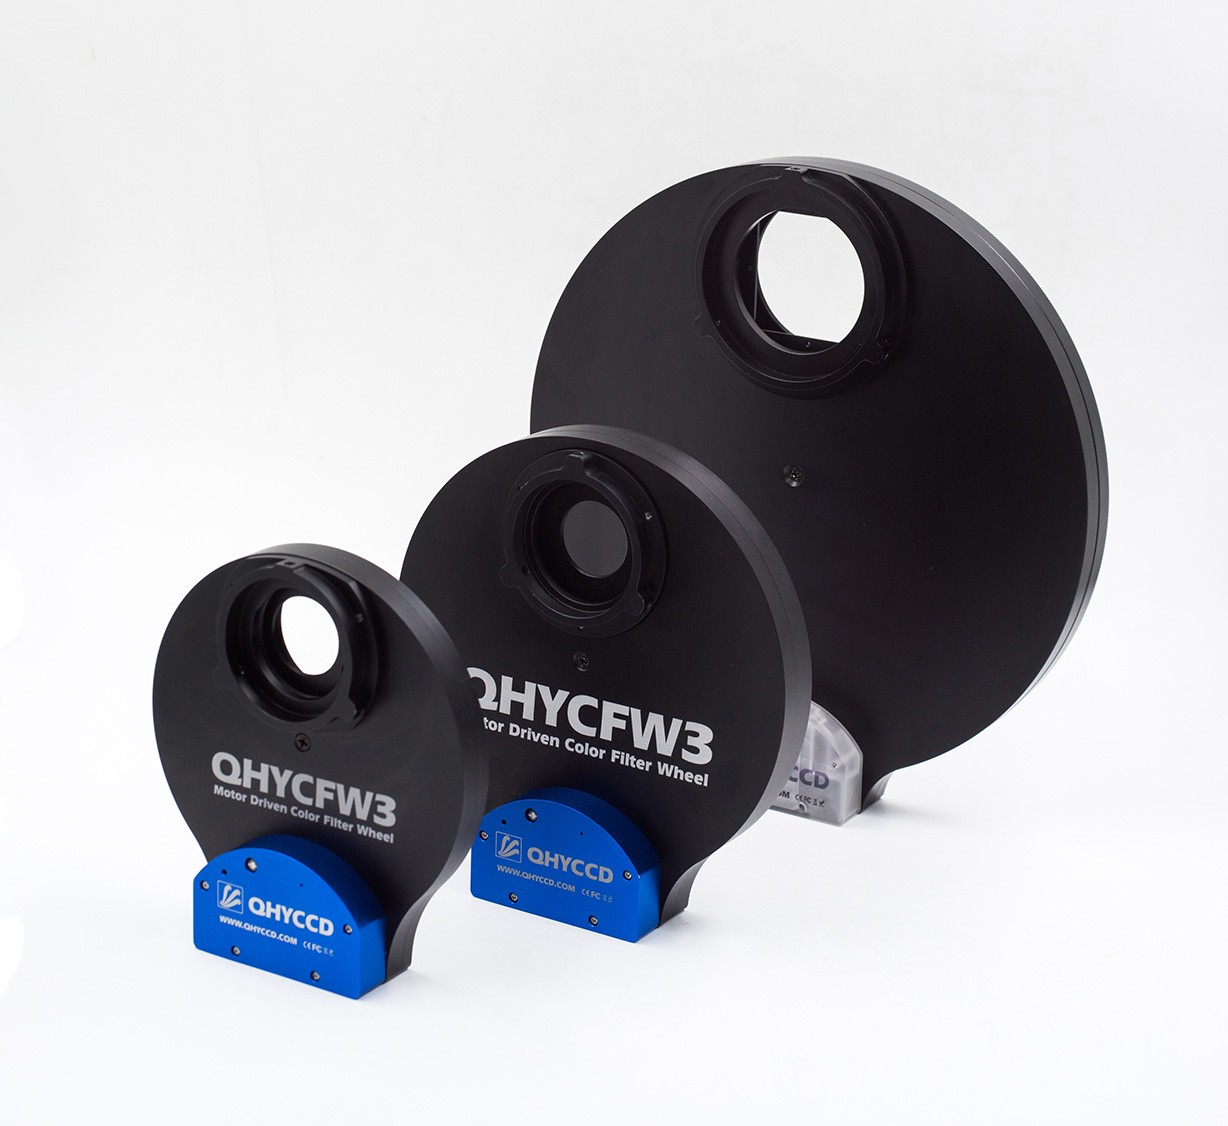 QHY Color Filter Wheel (CFW 3)